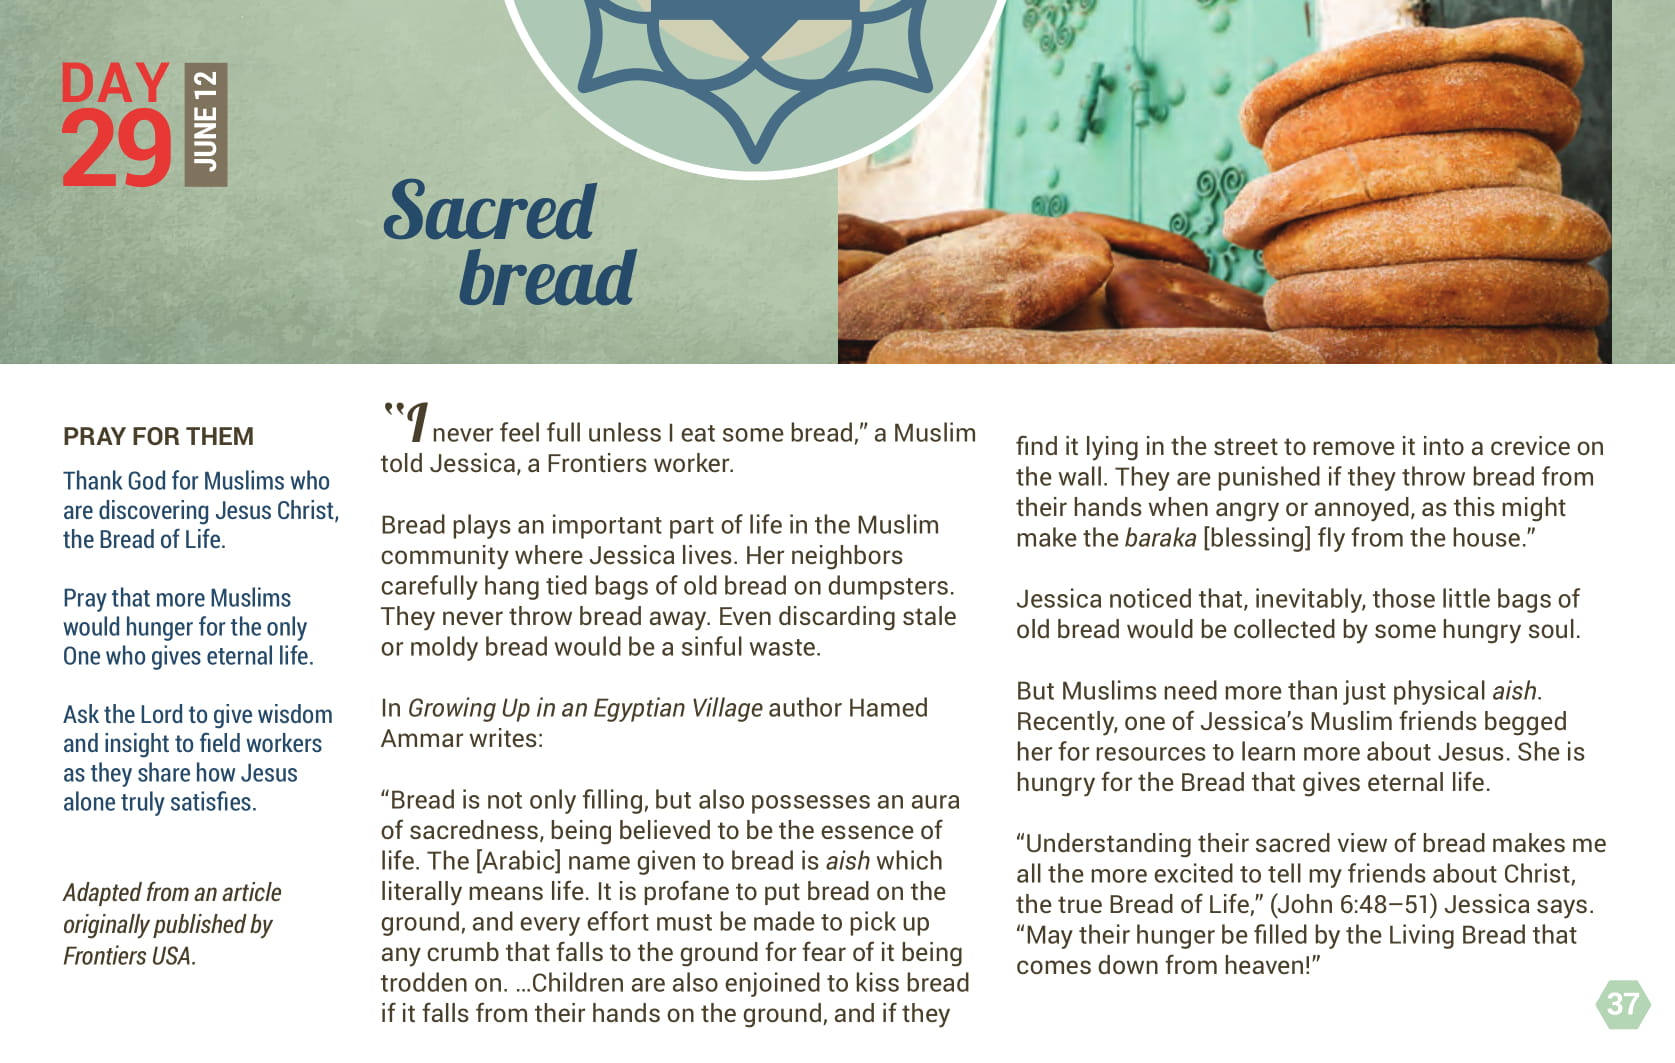 Day 29 - Sacred Bread